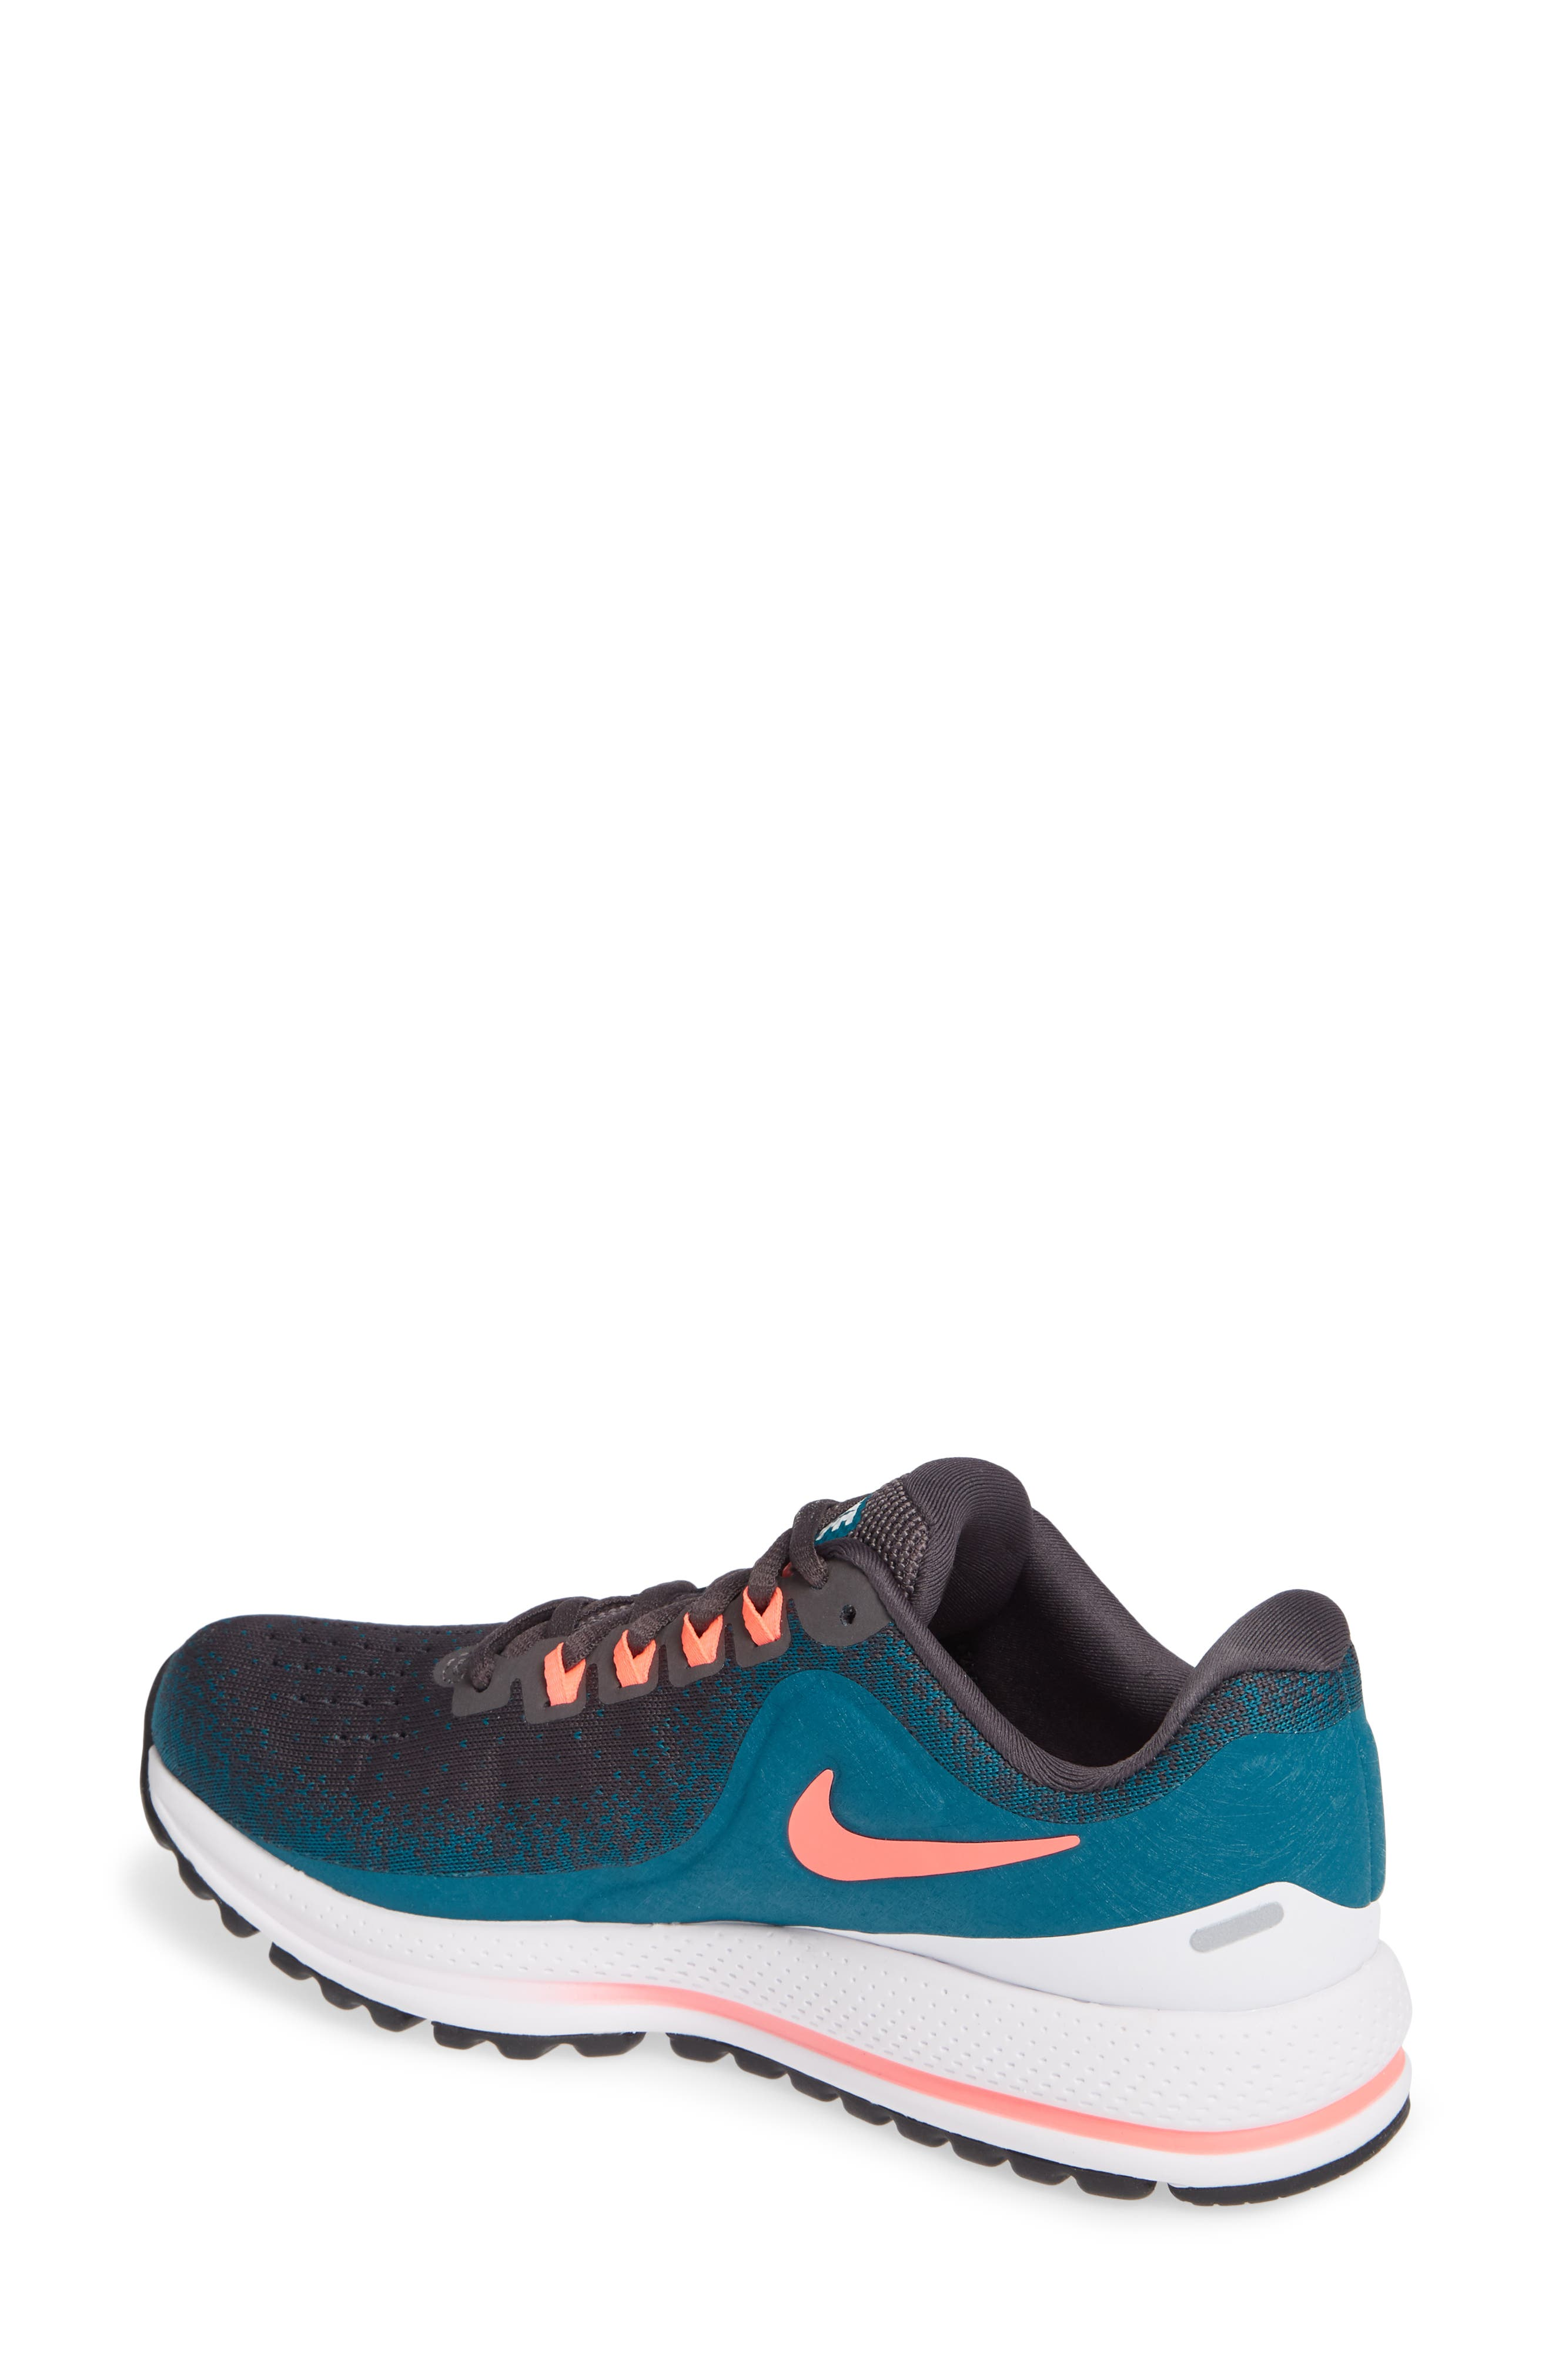 Air Zoom Vomero 13 Running Shoe,                             Alternate thumbnail 10, color,